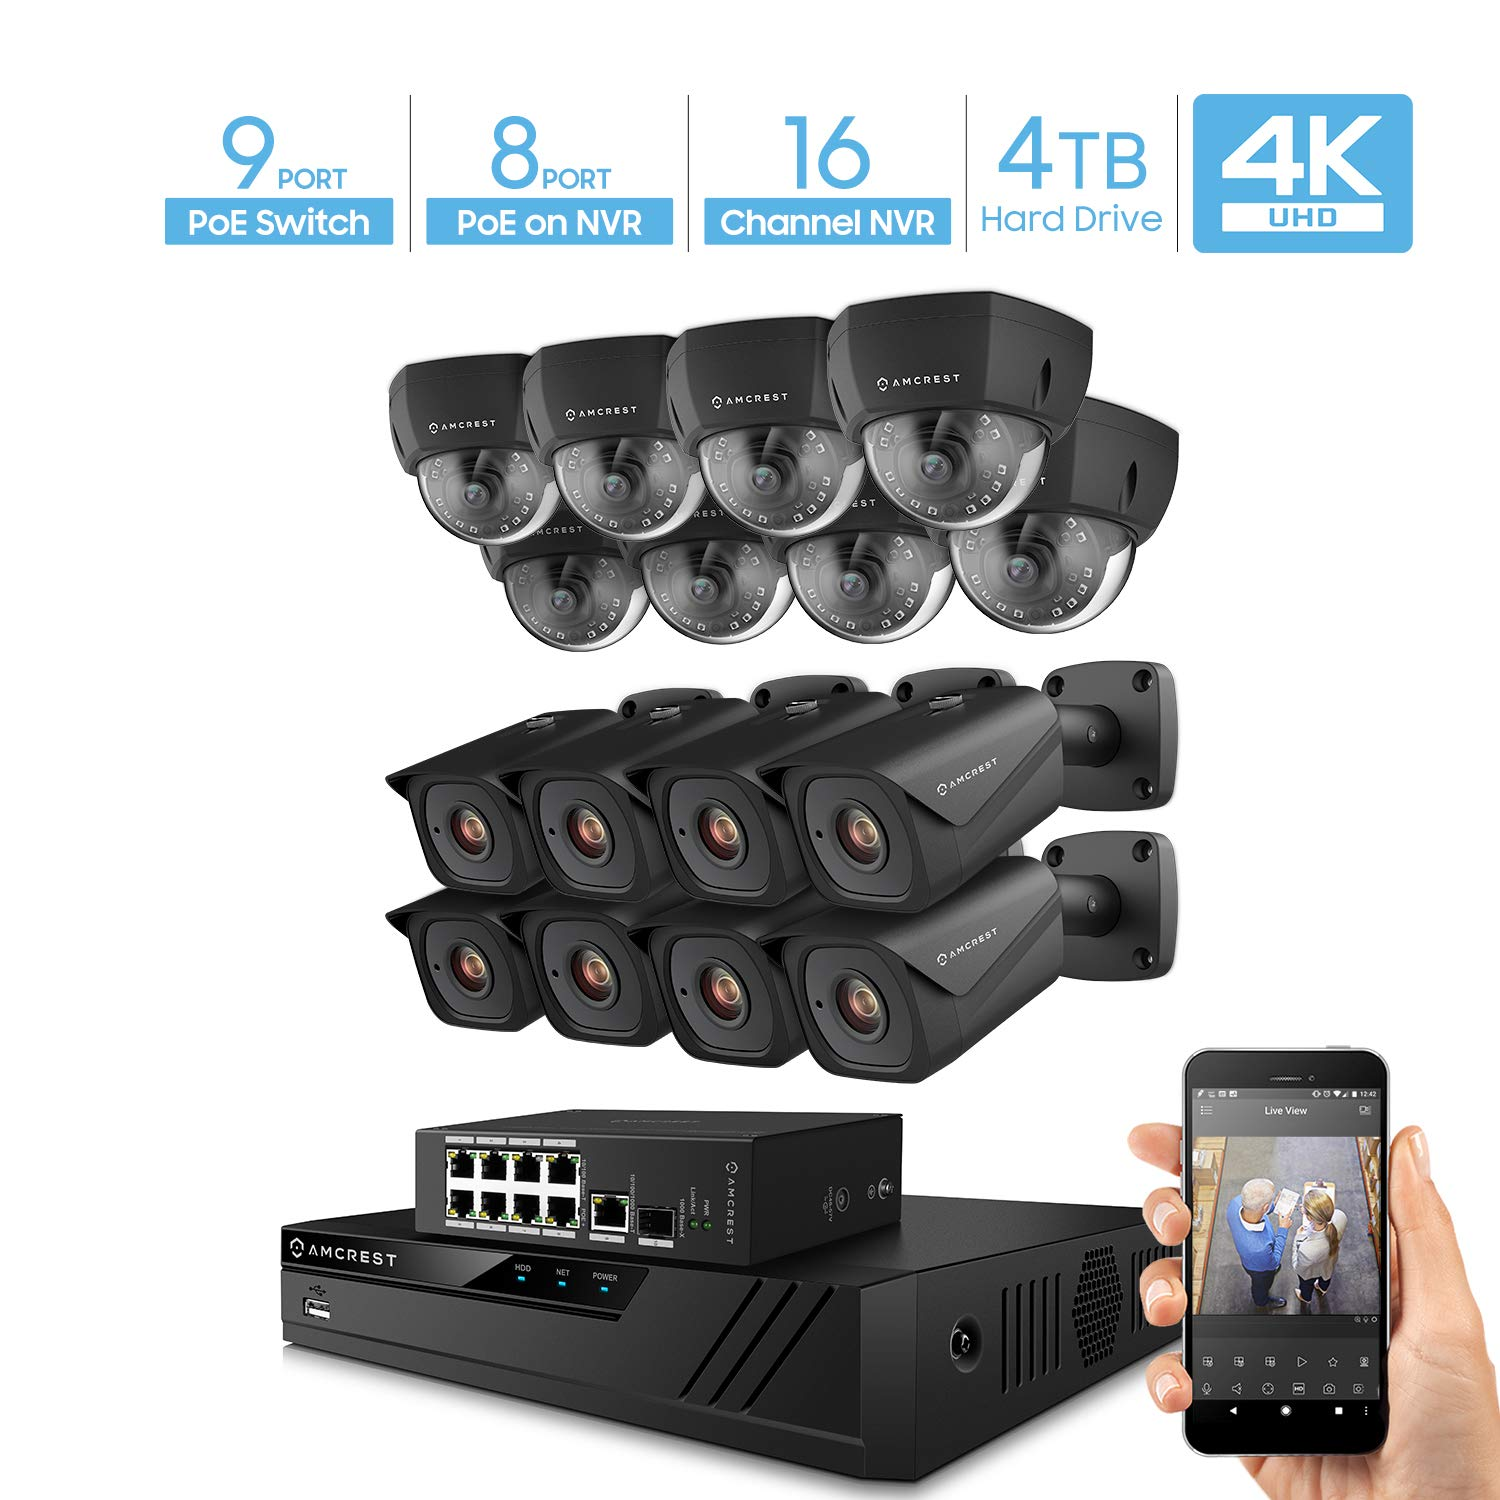 Amcrest 4K UltraHD Video Security Camera System w 4K 16CH PoE NVR, 16 x 4K Bullet Dome IP PoE Cameras, 9-Port PoE Switch w Gigabit Uplink, Pre-Installed 4TB HDD Supports up to 6TB Black